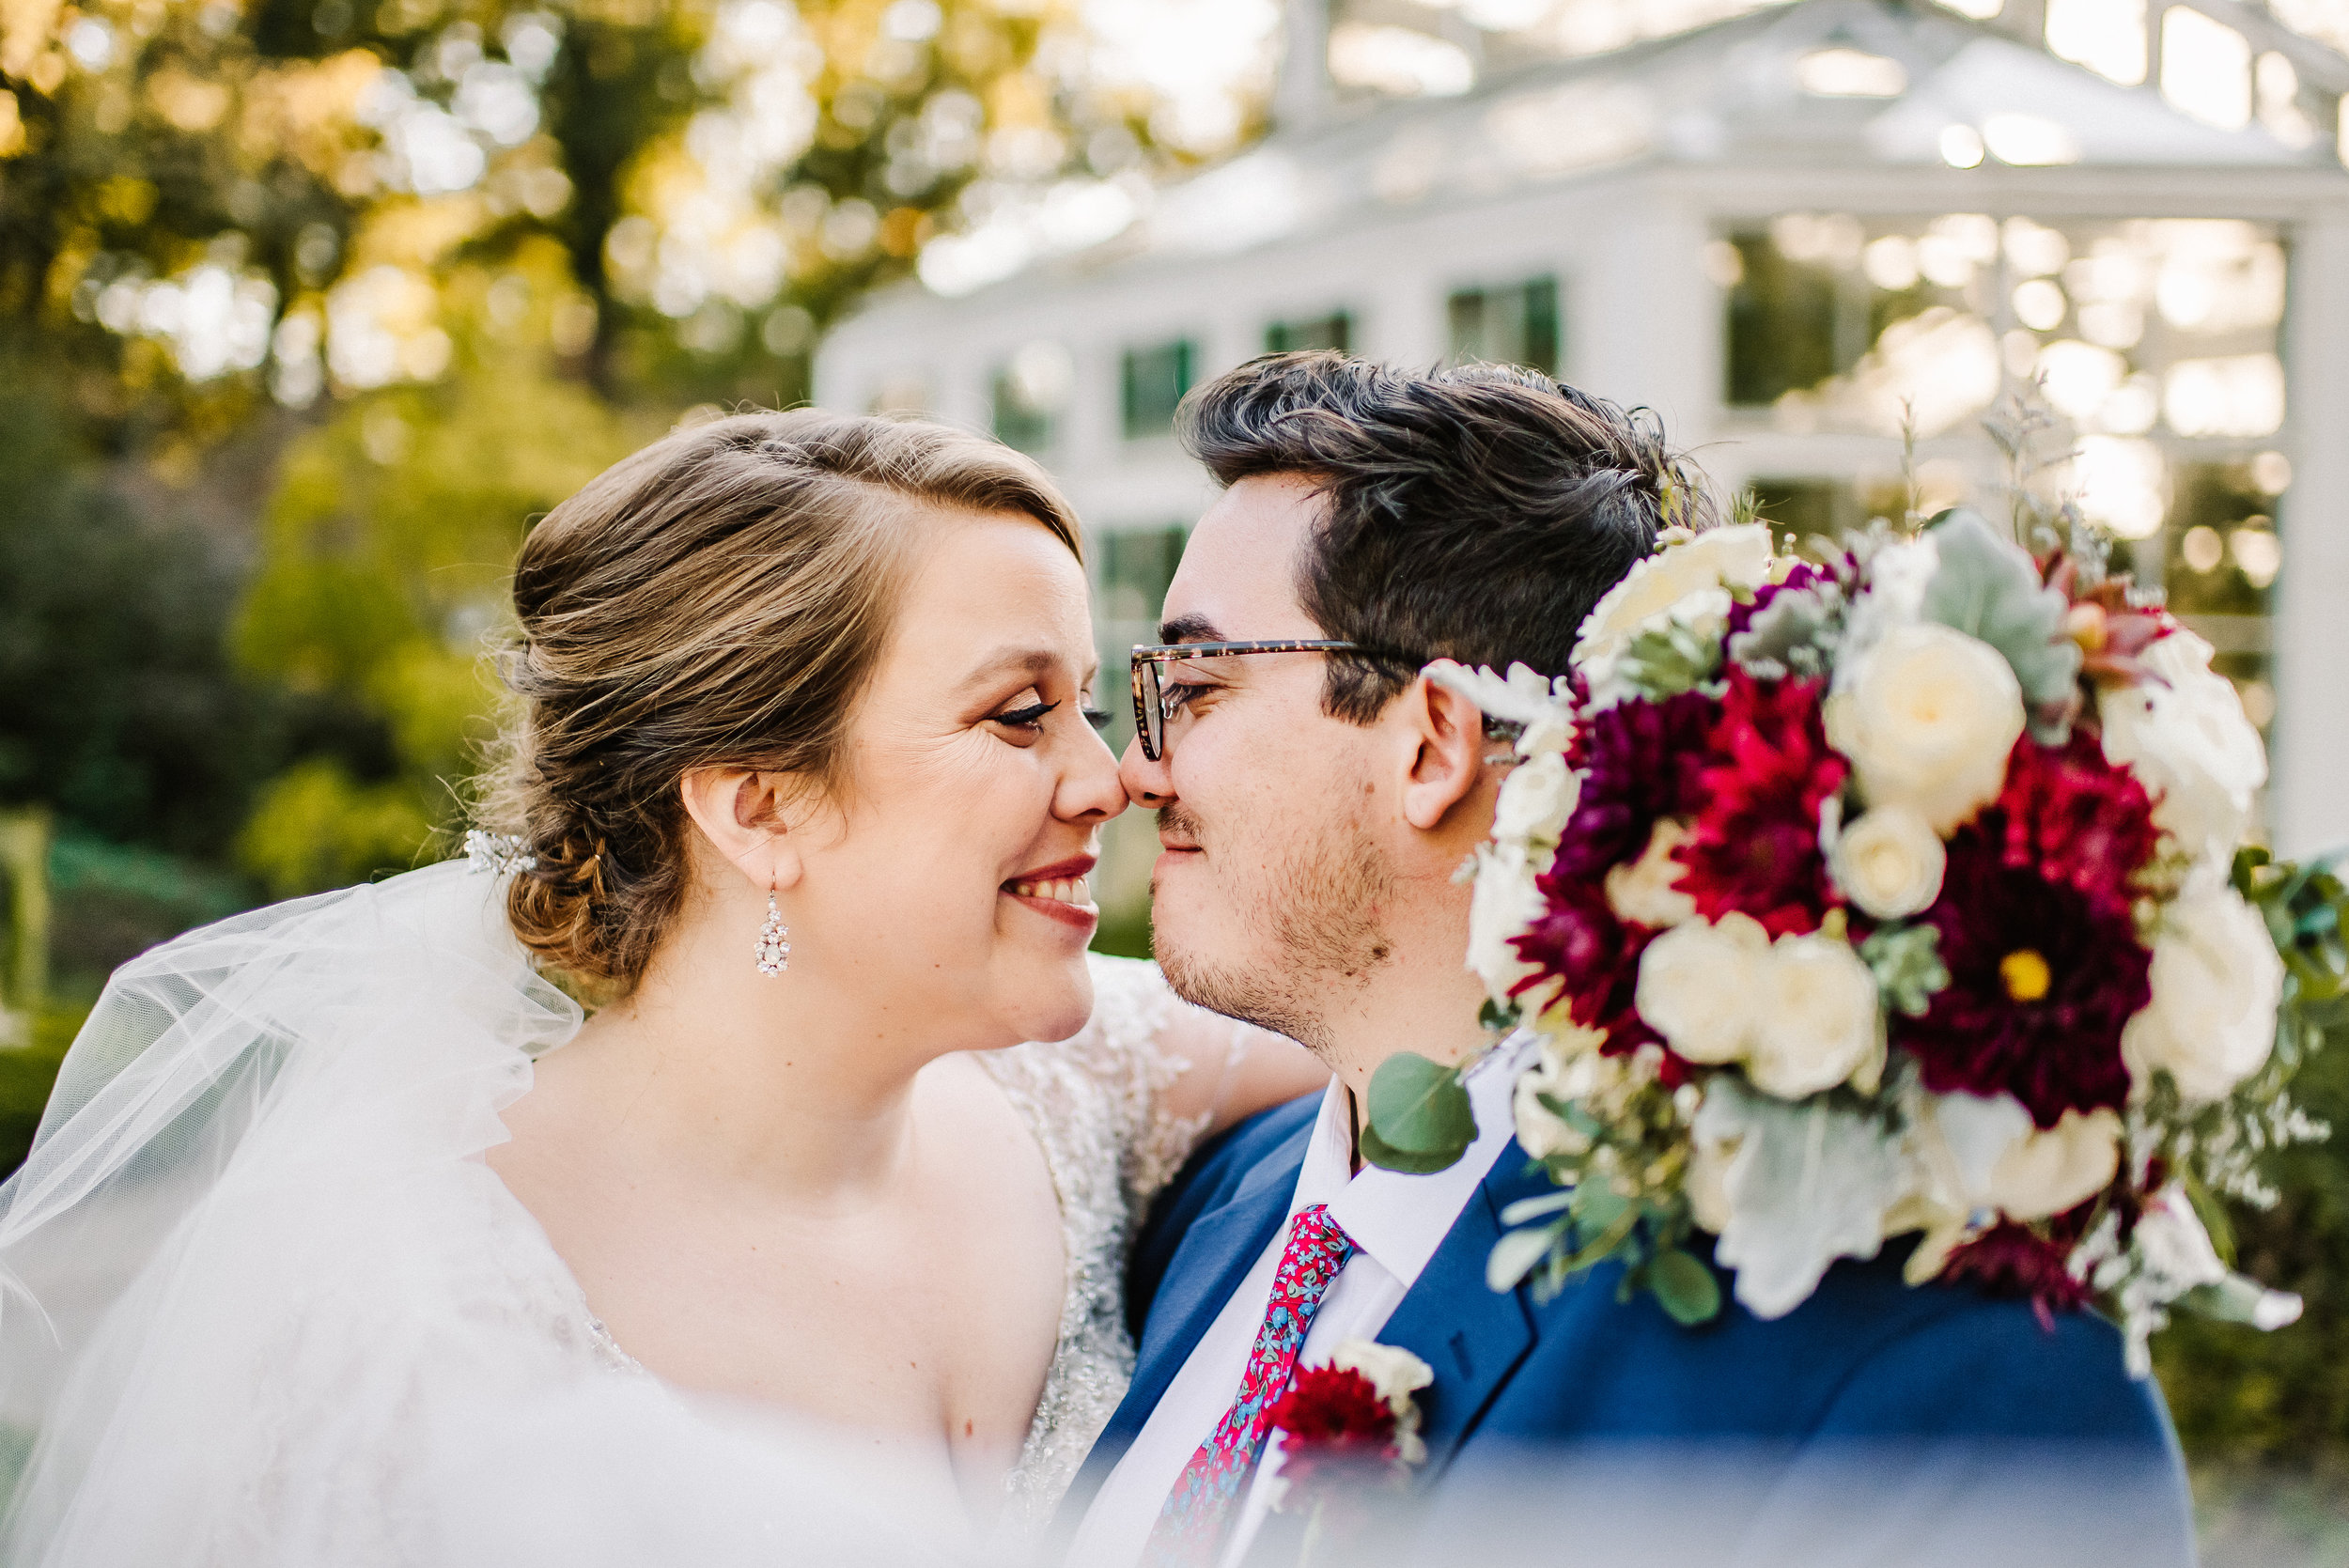 Dixon Gallery Wedding_Murphy Wedding_Ashley Benham Photography-446.jpg